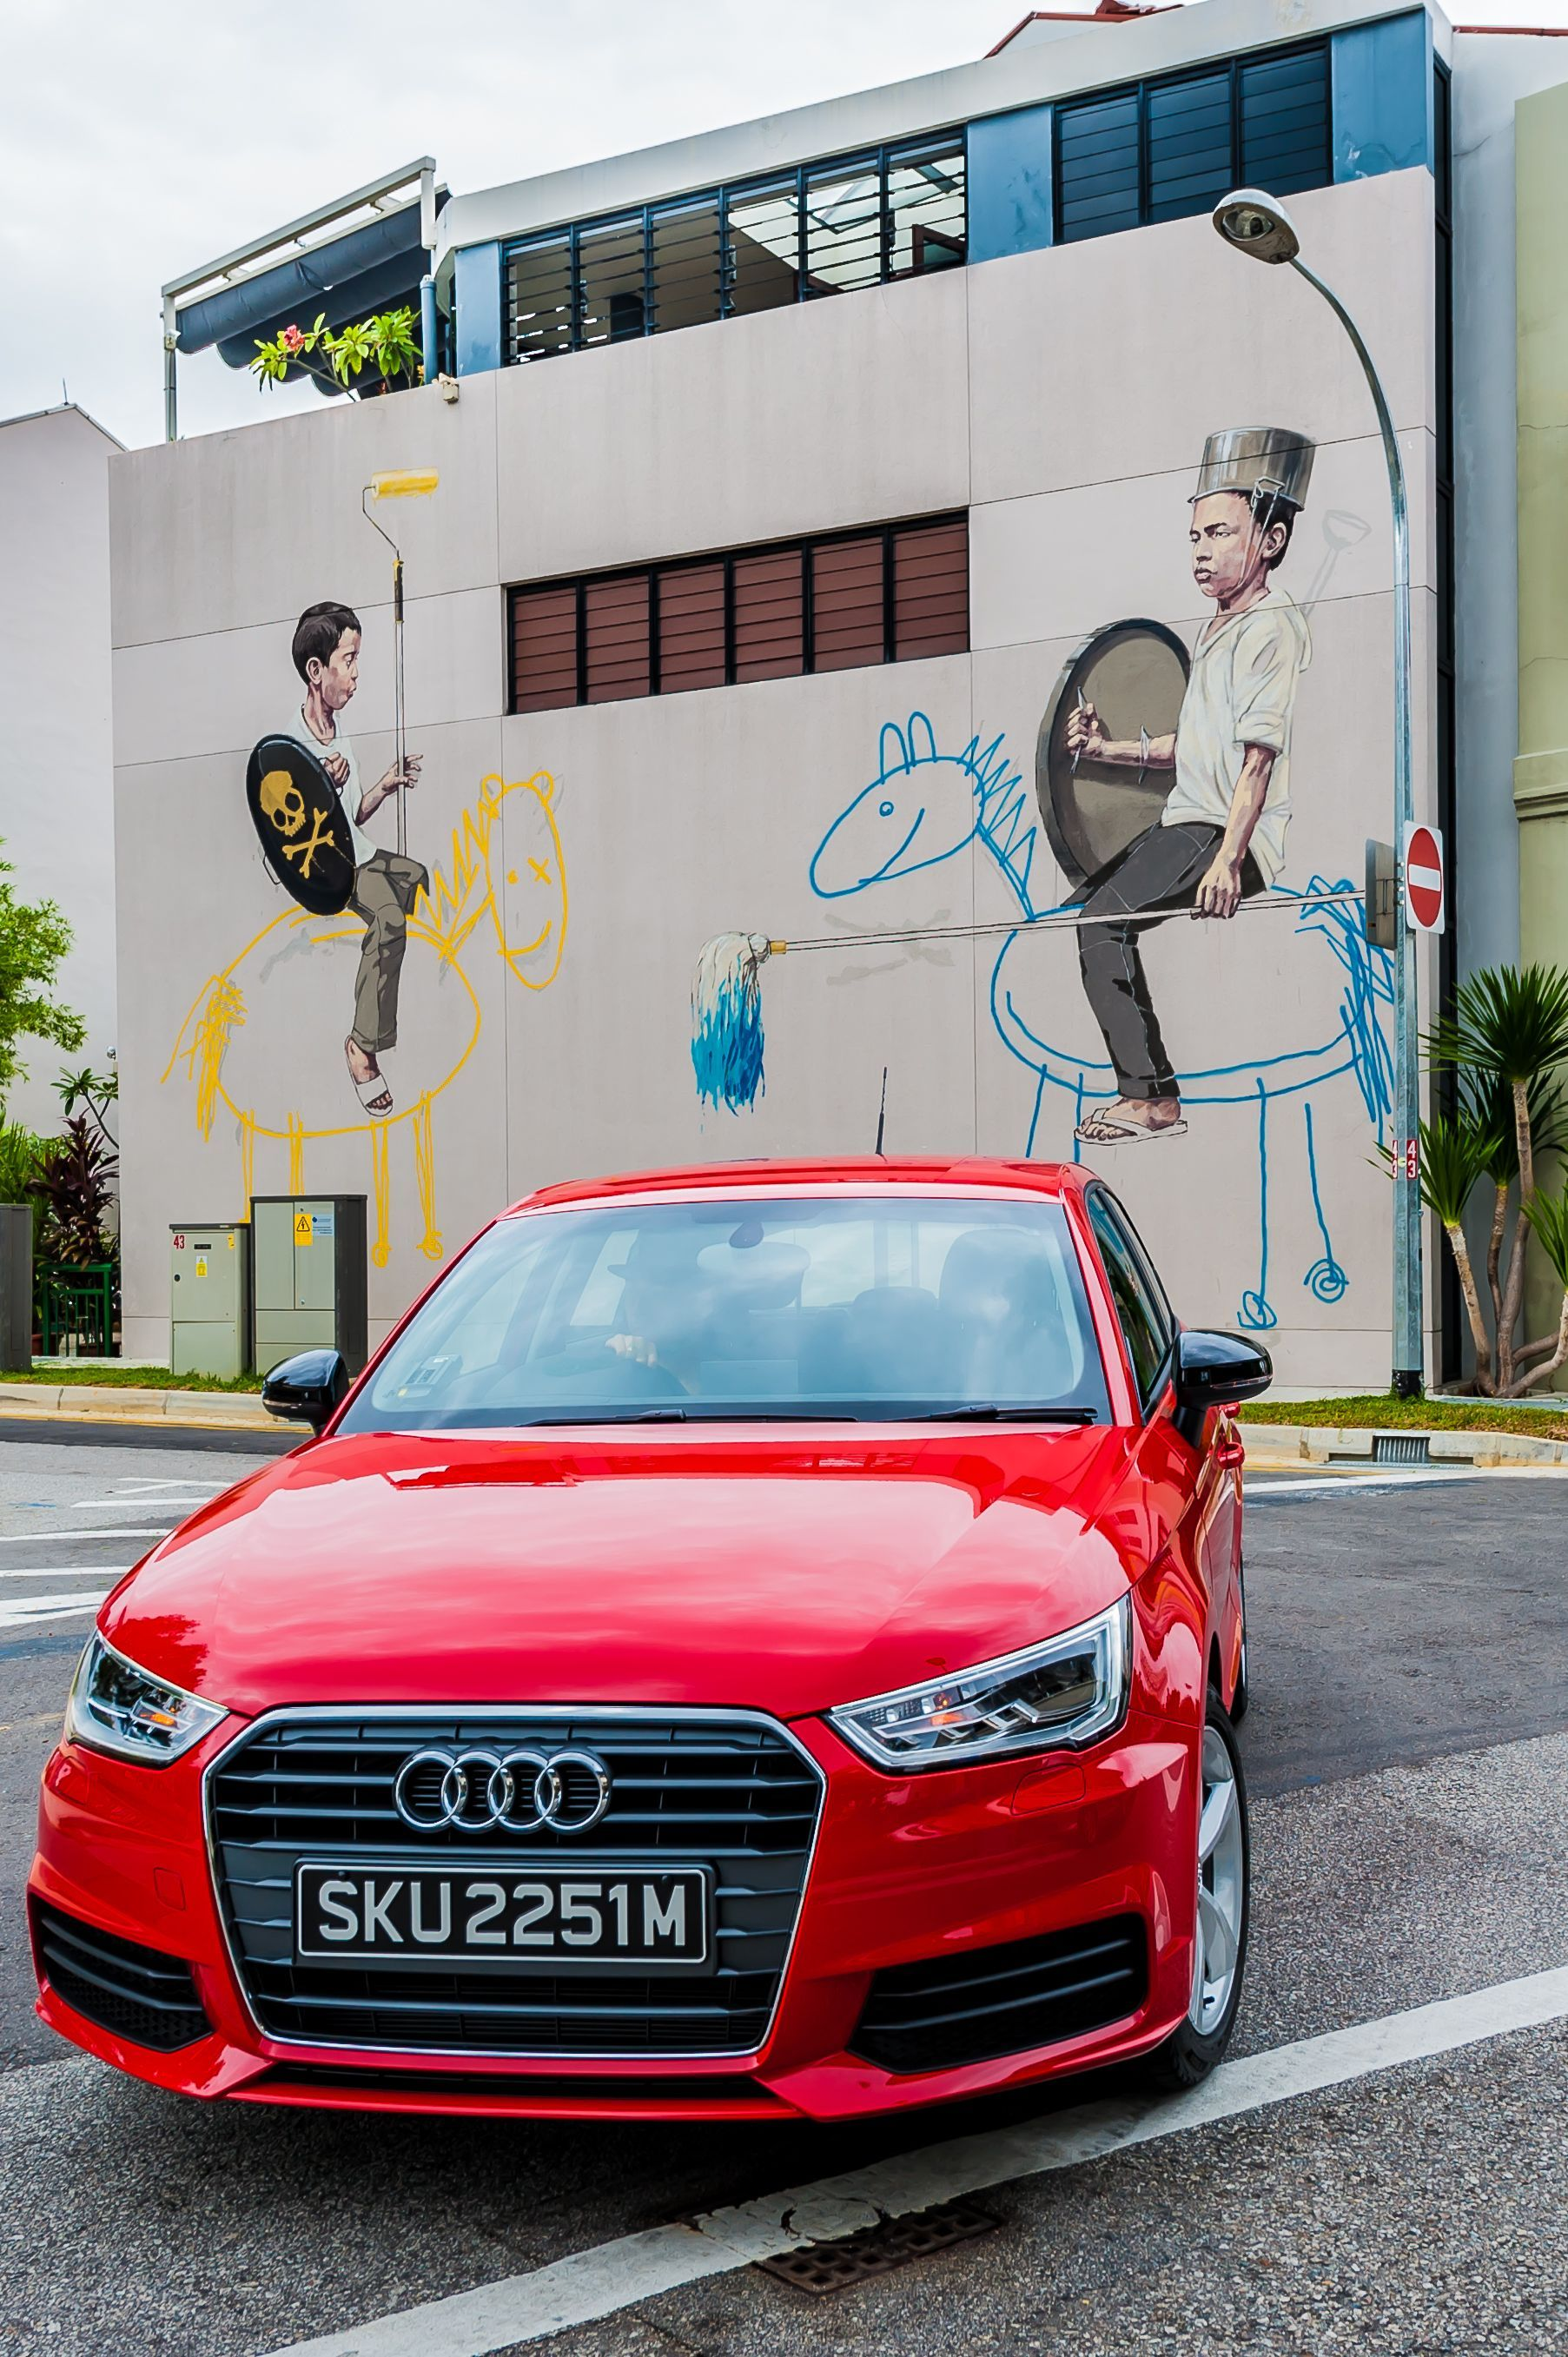 The Unexpected Surprise of Street Art by Ernest Zacharevic in Singapore | SENATUS